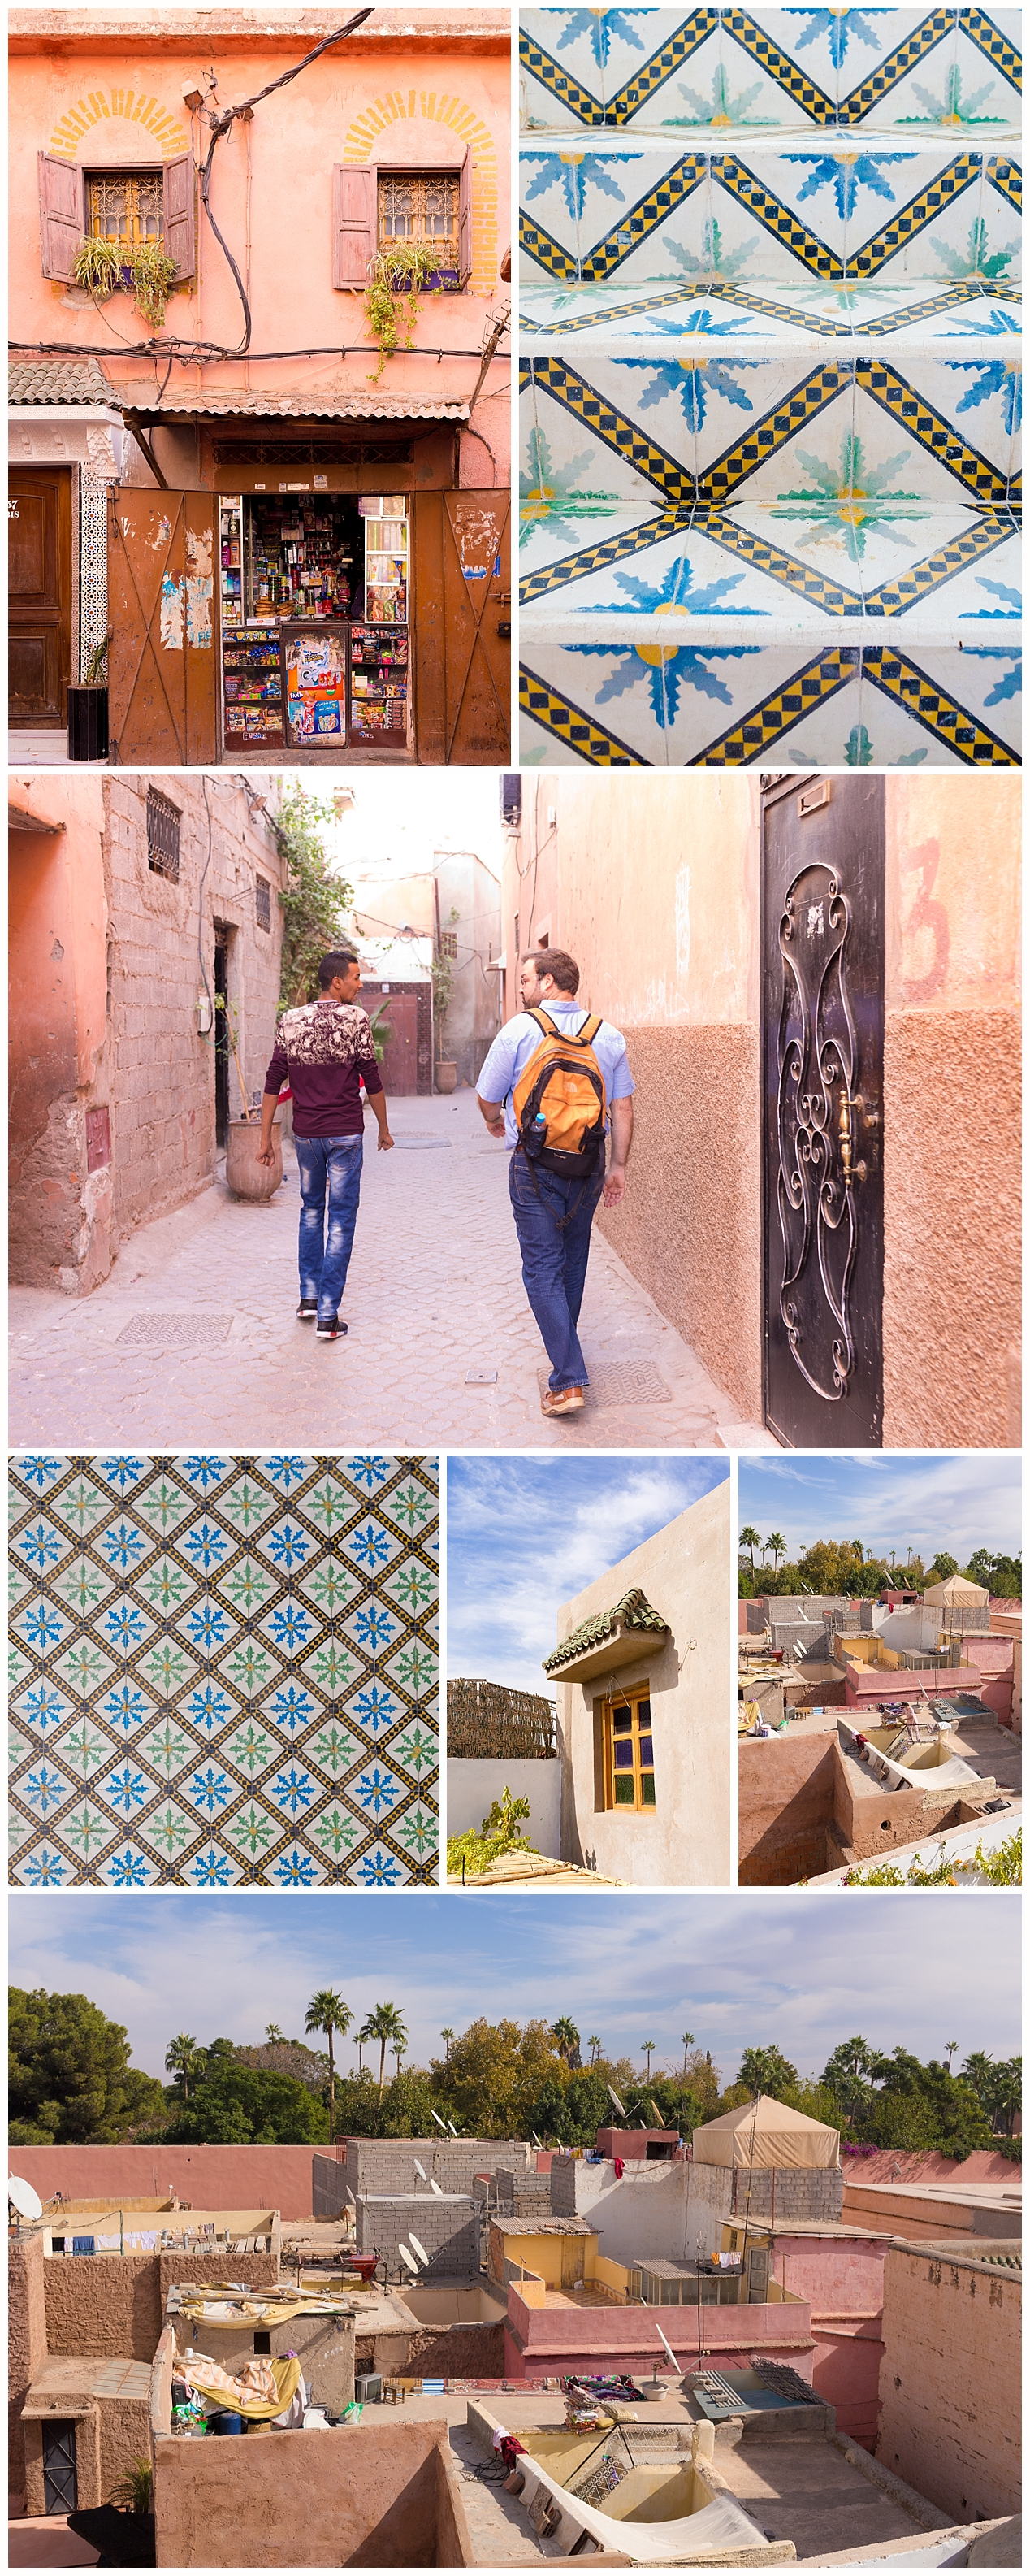 tourists in Marrakech